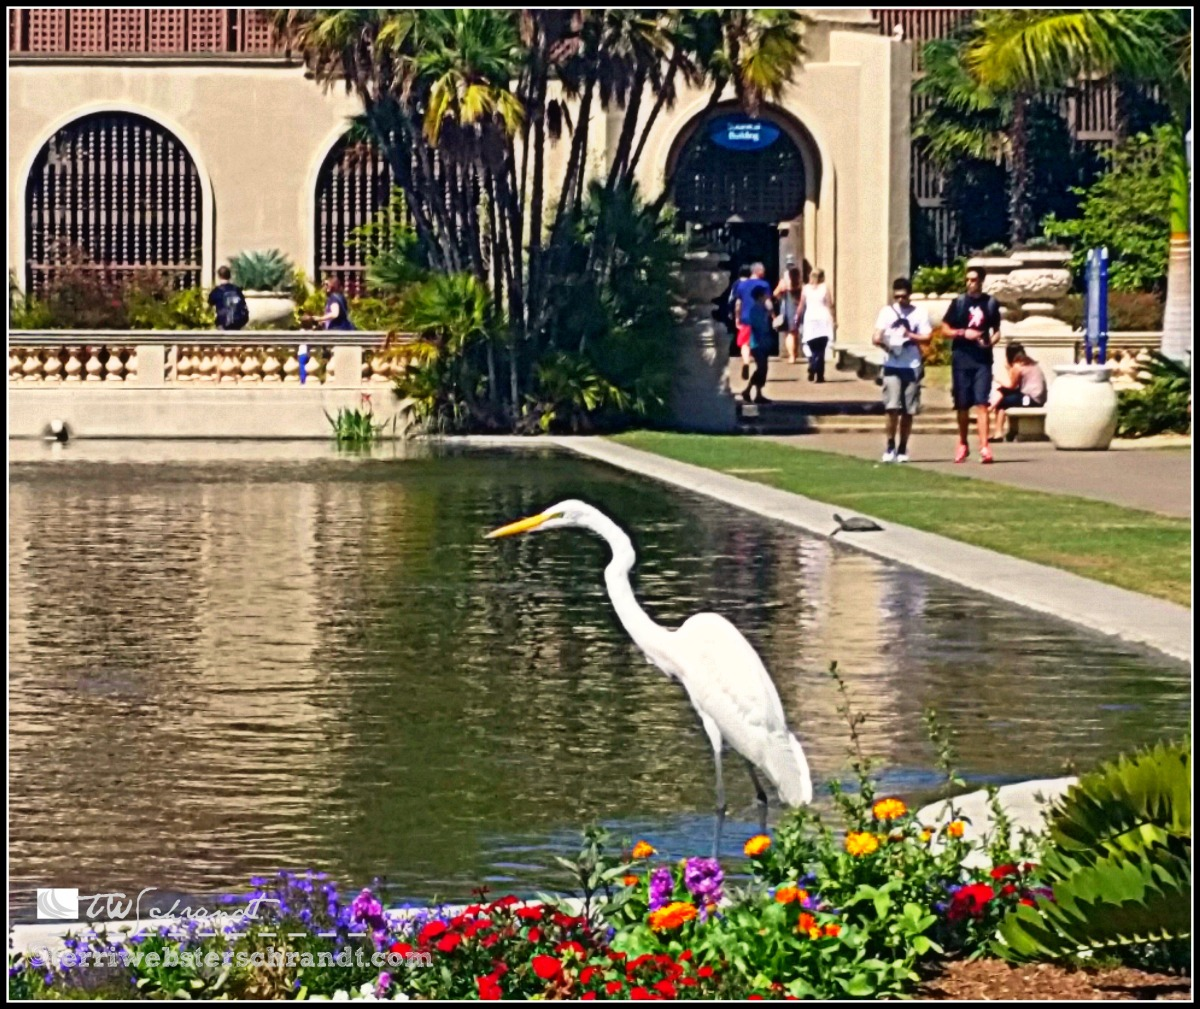 The egret knows there is a school of fish gathering in the Balboa Park Koy Pond